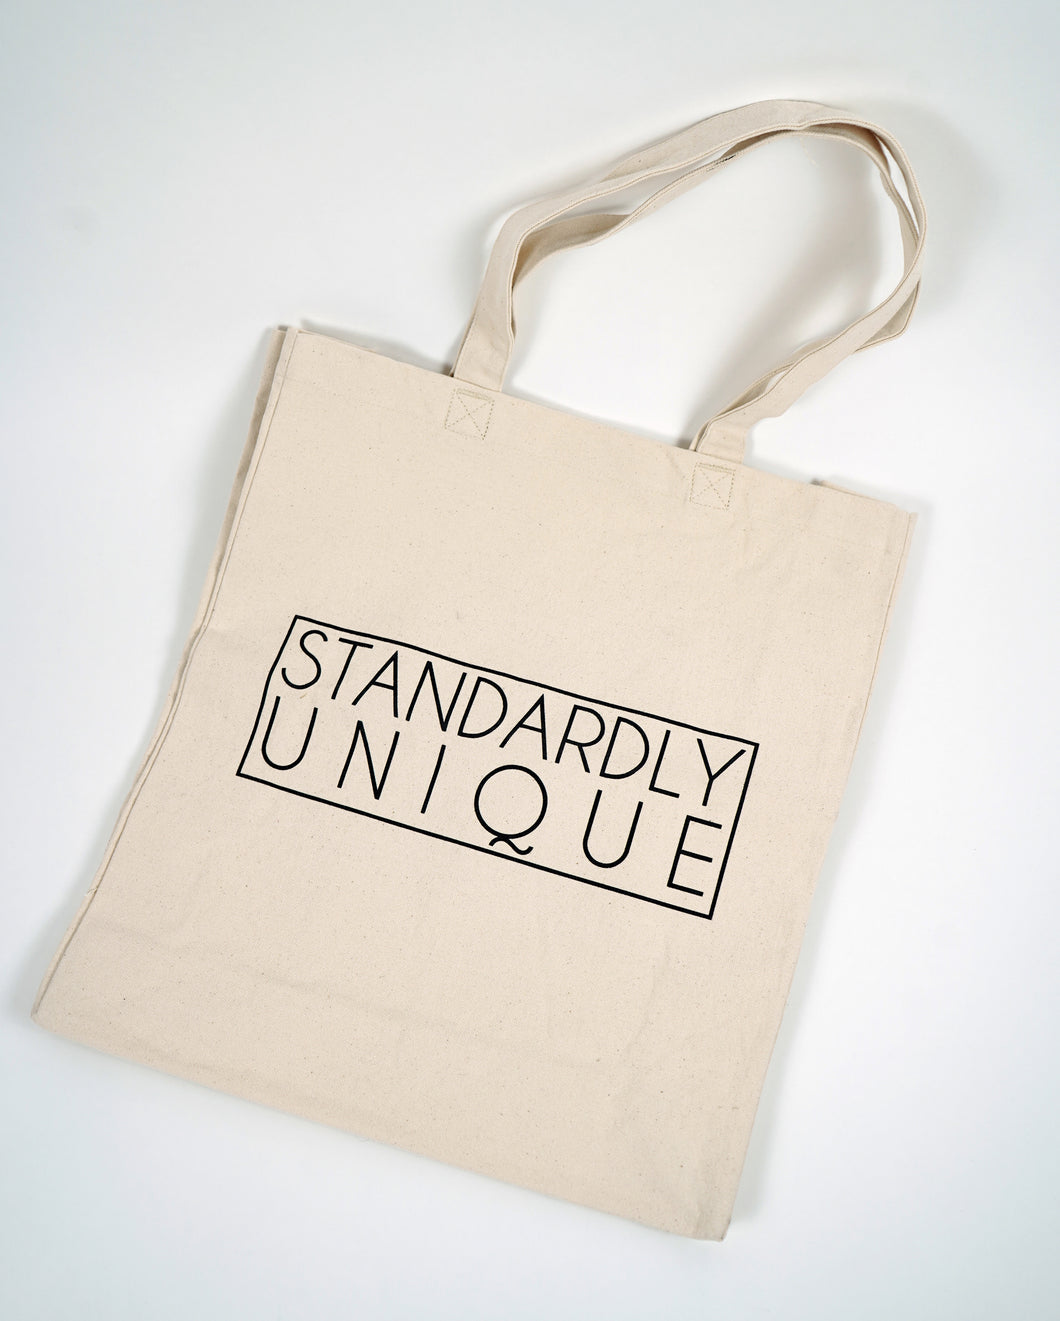 Standardly Unique Tote Bag - Natural